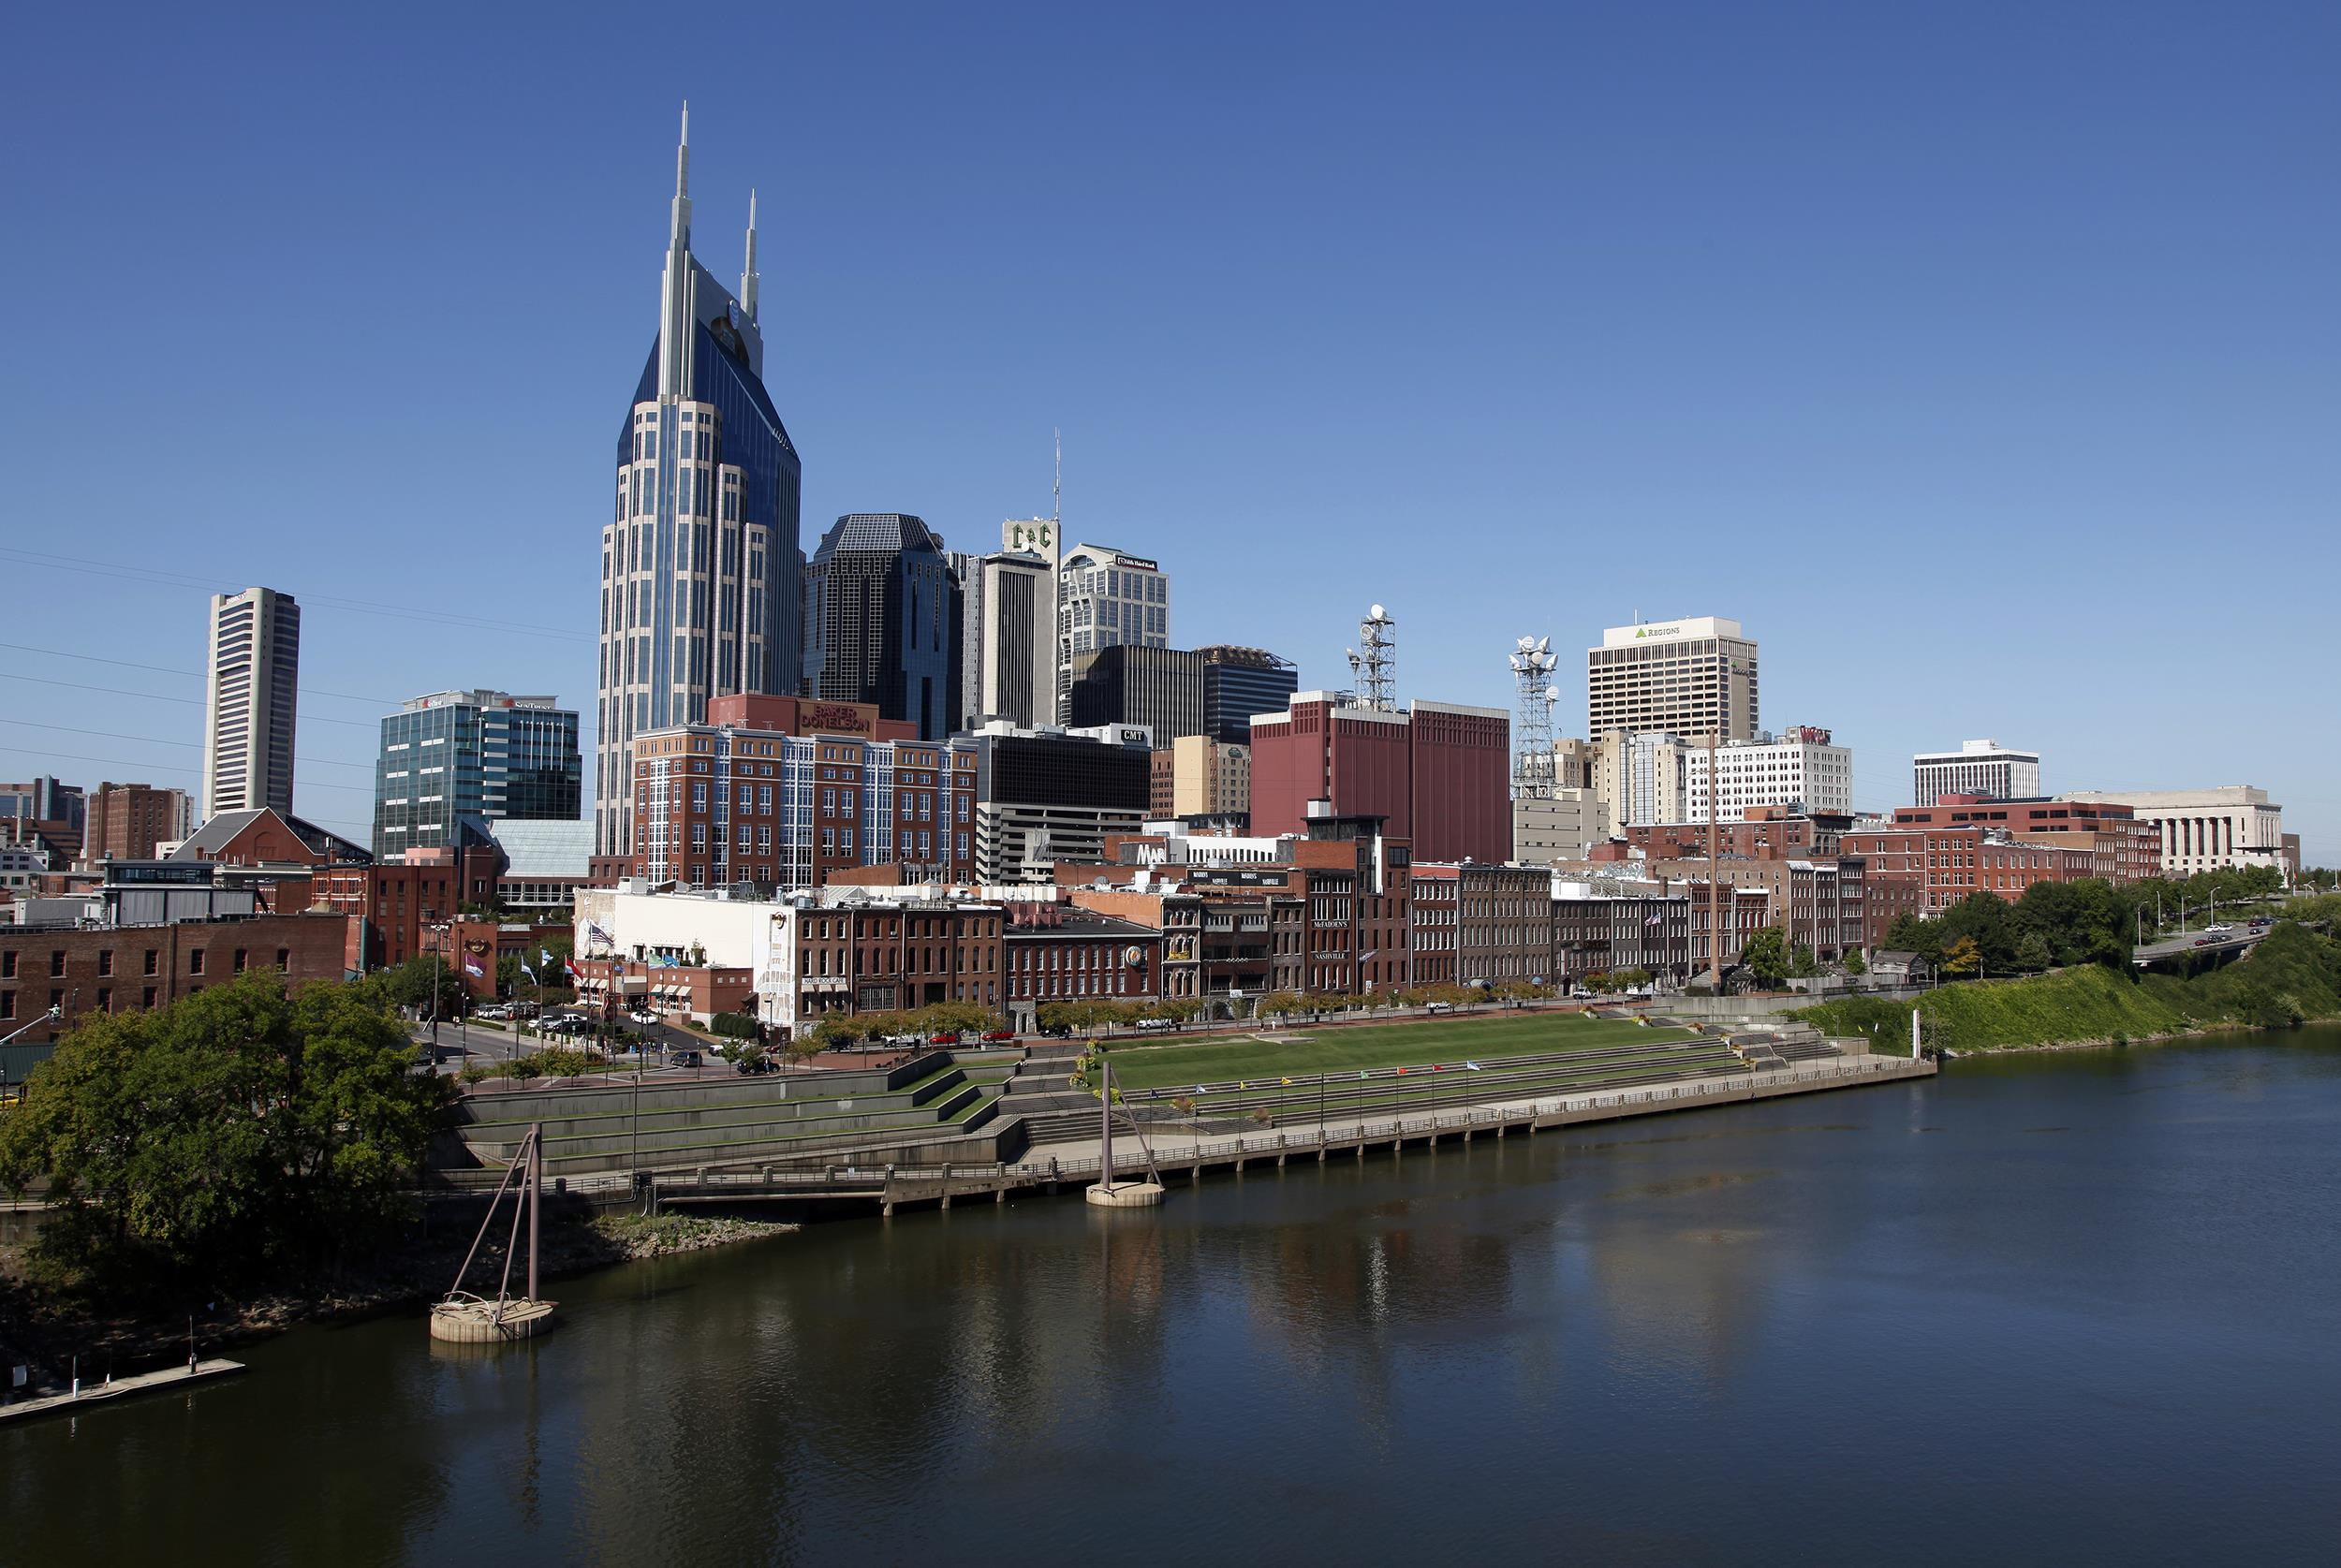 Image: The Nashville, Tenn. downtown area and the Cumberland River on Sept. 27, 2011.